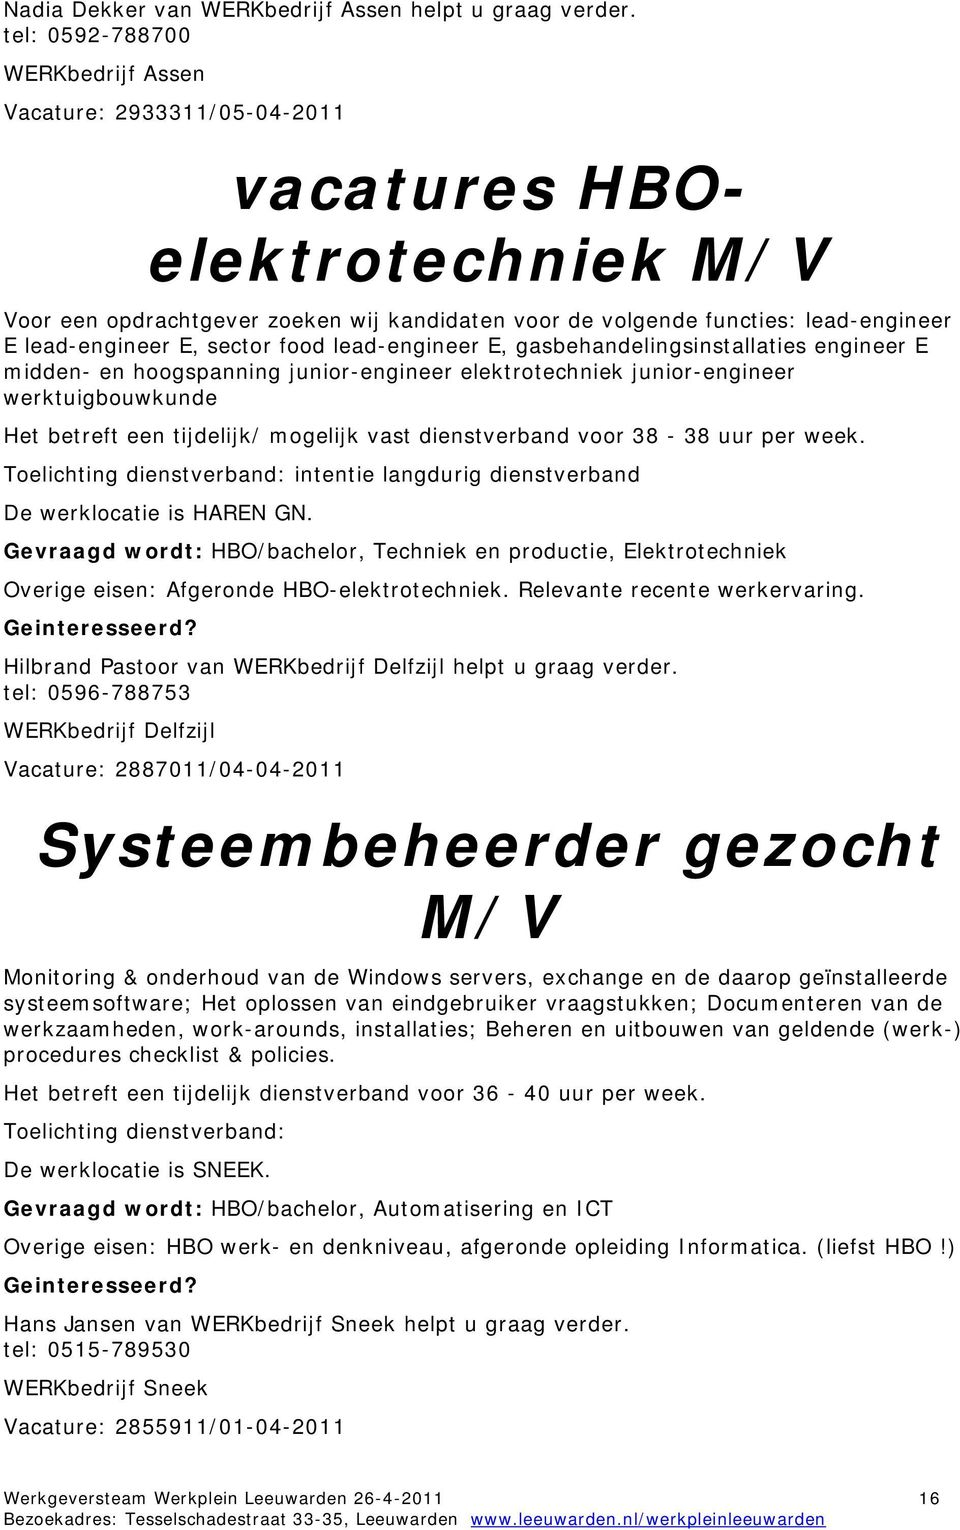 E, sector food lead-engineer E, gasbehandelingsinstallaties engineer E midden- en hoogspanning junior-engineer elektrotechniek junior-engineer werktuigbouwkunde Het betreft een tijdelijk/ mogelijk